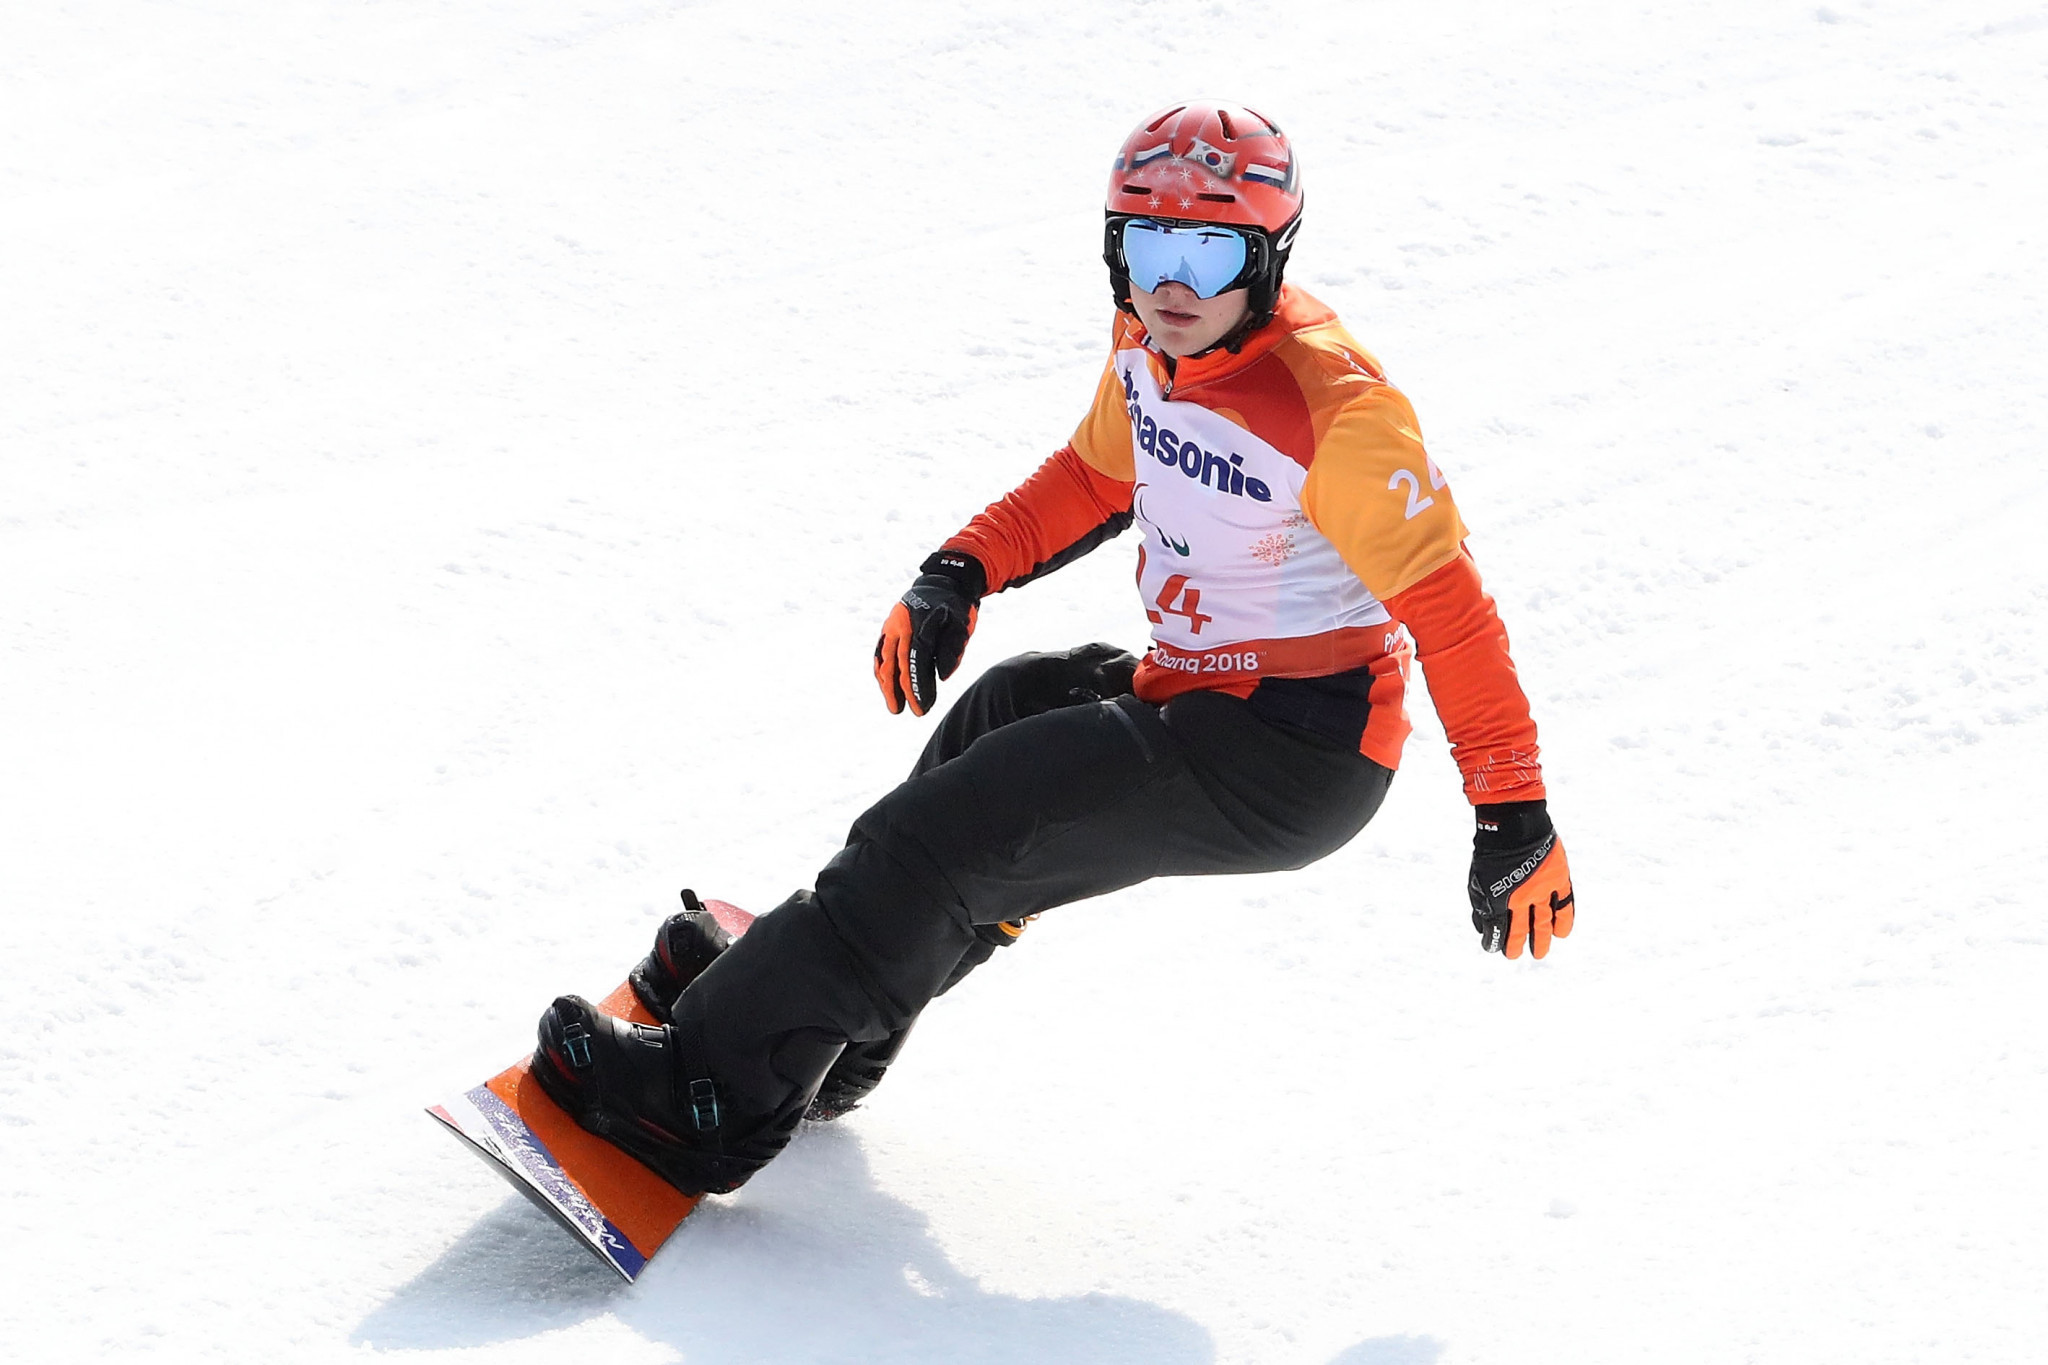 The Netherlands' Chris Vos has been unbeatable in banked slalom this season ©Getty Images